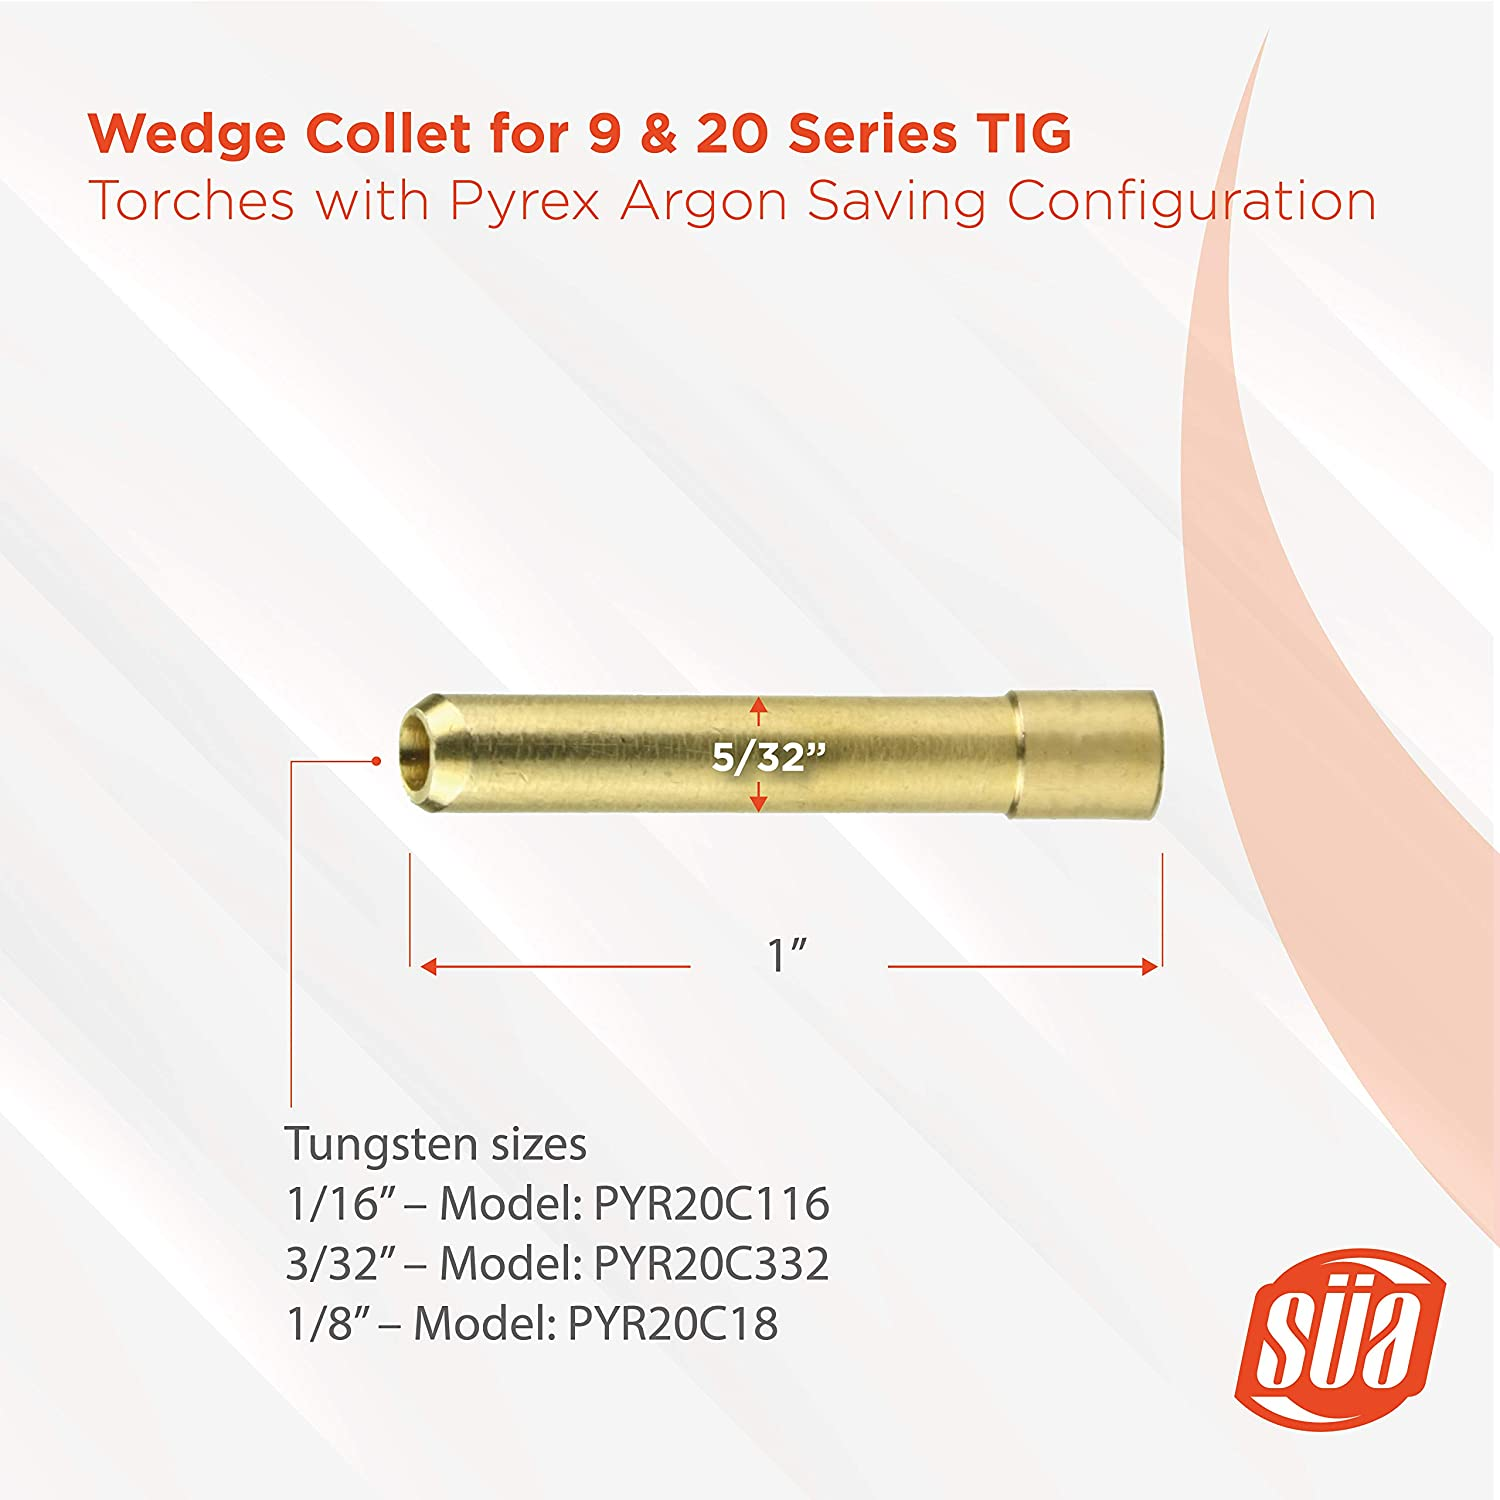 S/ÜA Size: 3//32 - Wedge Collet for 9 /& 20 Series TIG Torches with Fused Quartz Argon-Saving Configuration 10-PACK